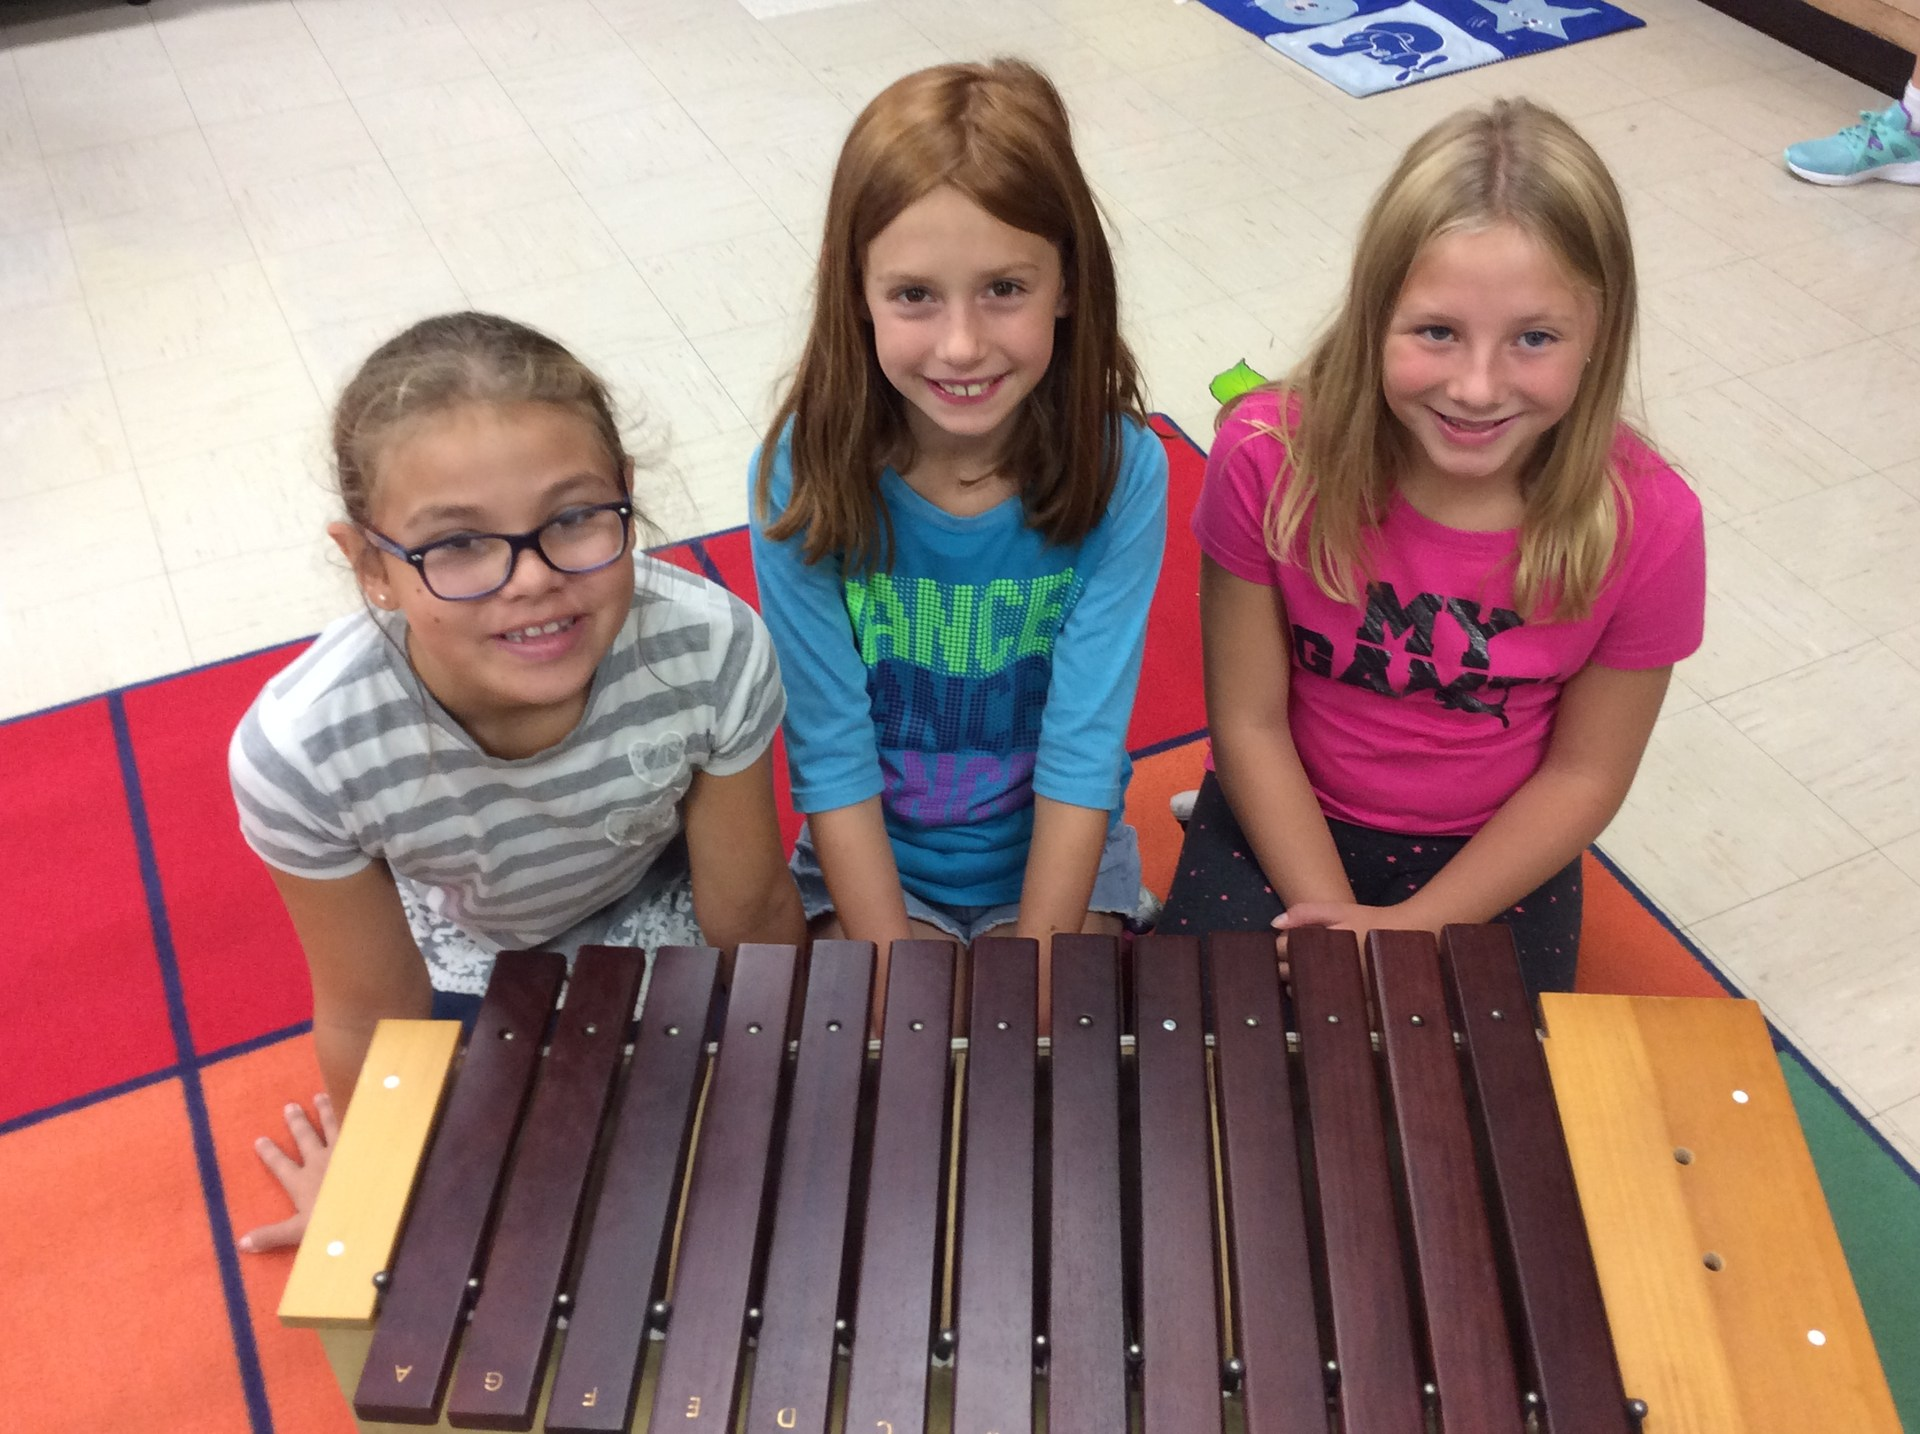 Playing the xylophone